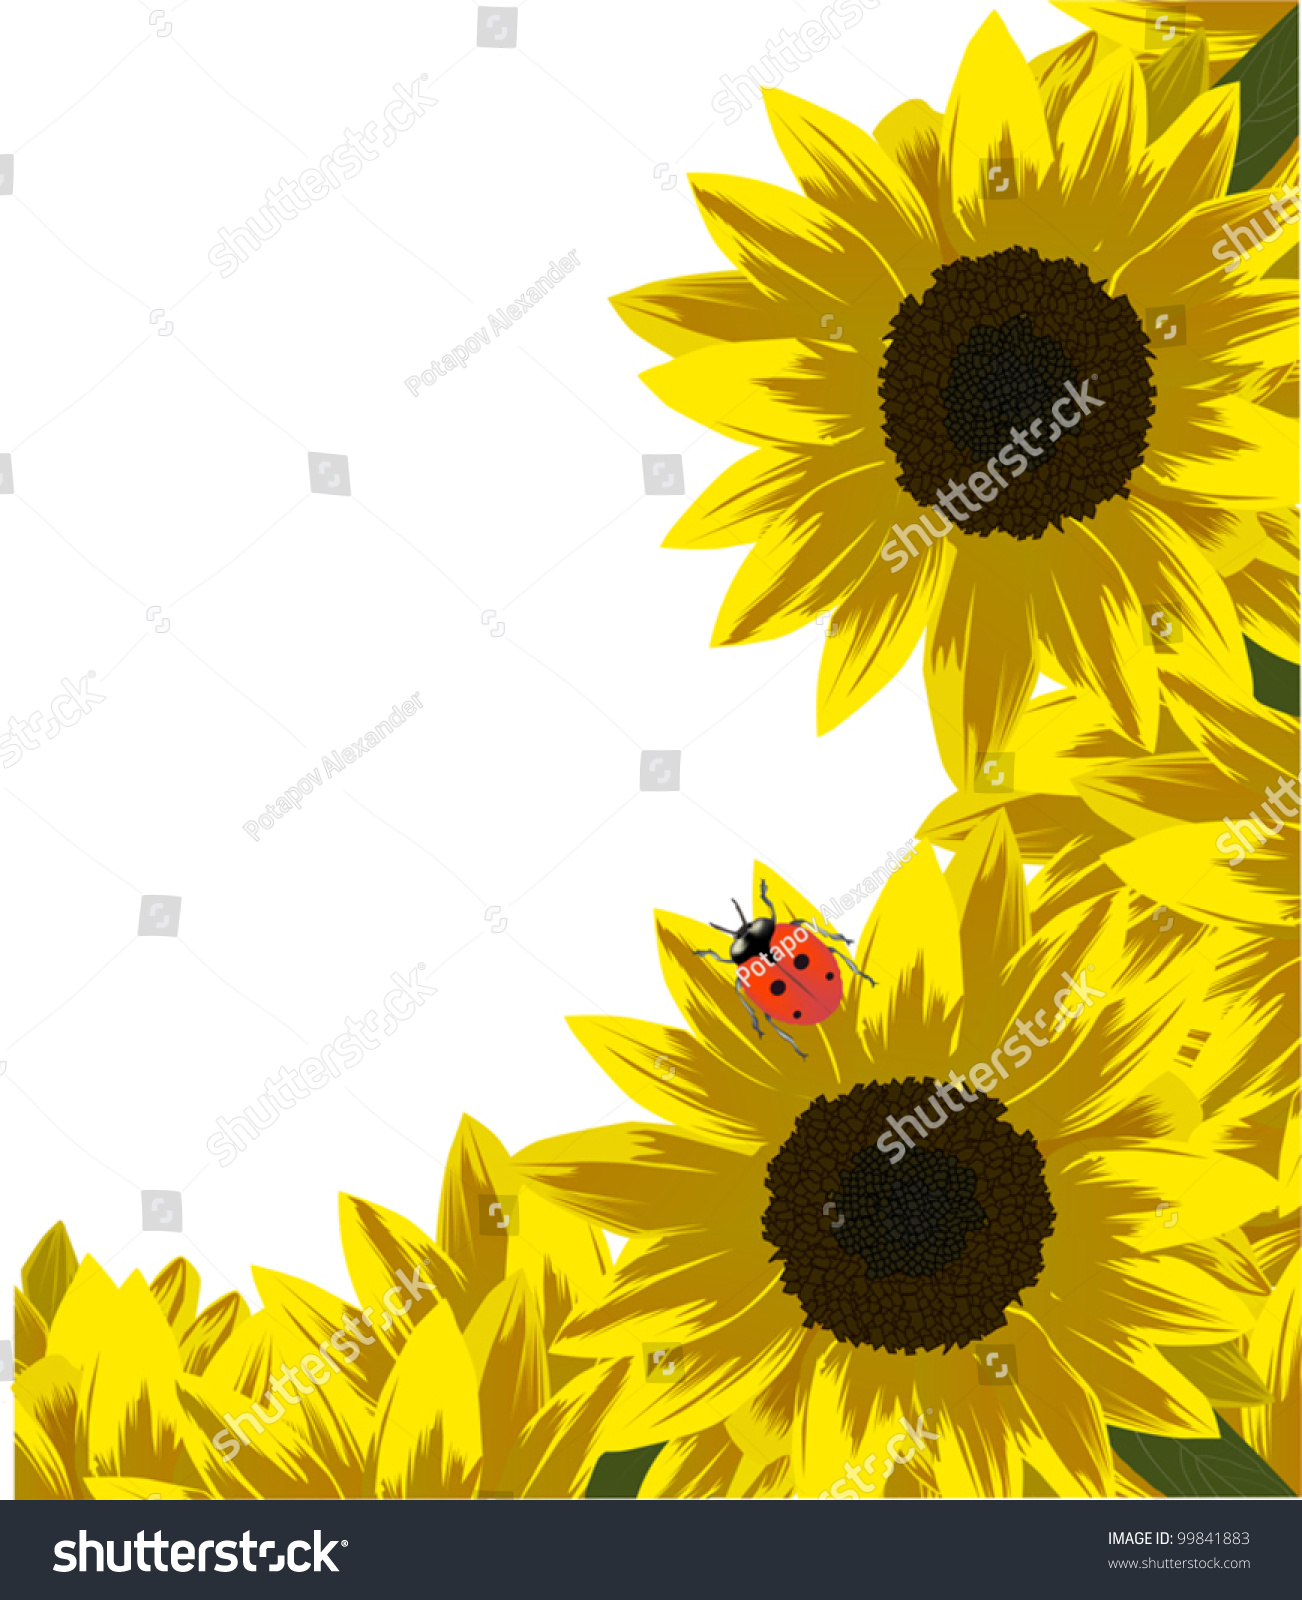 Illustration Red Ladybird On Yellow Sunflower Stock Vector 99841883 ...